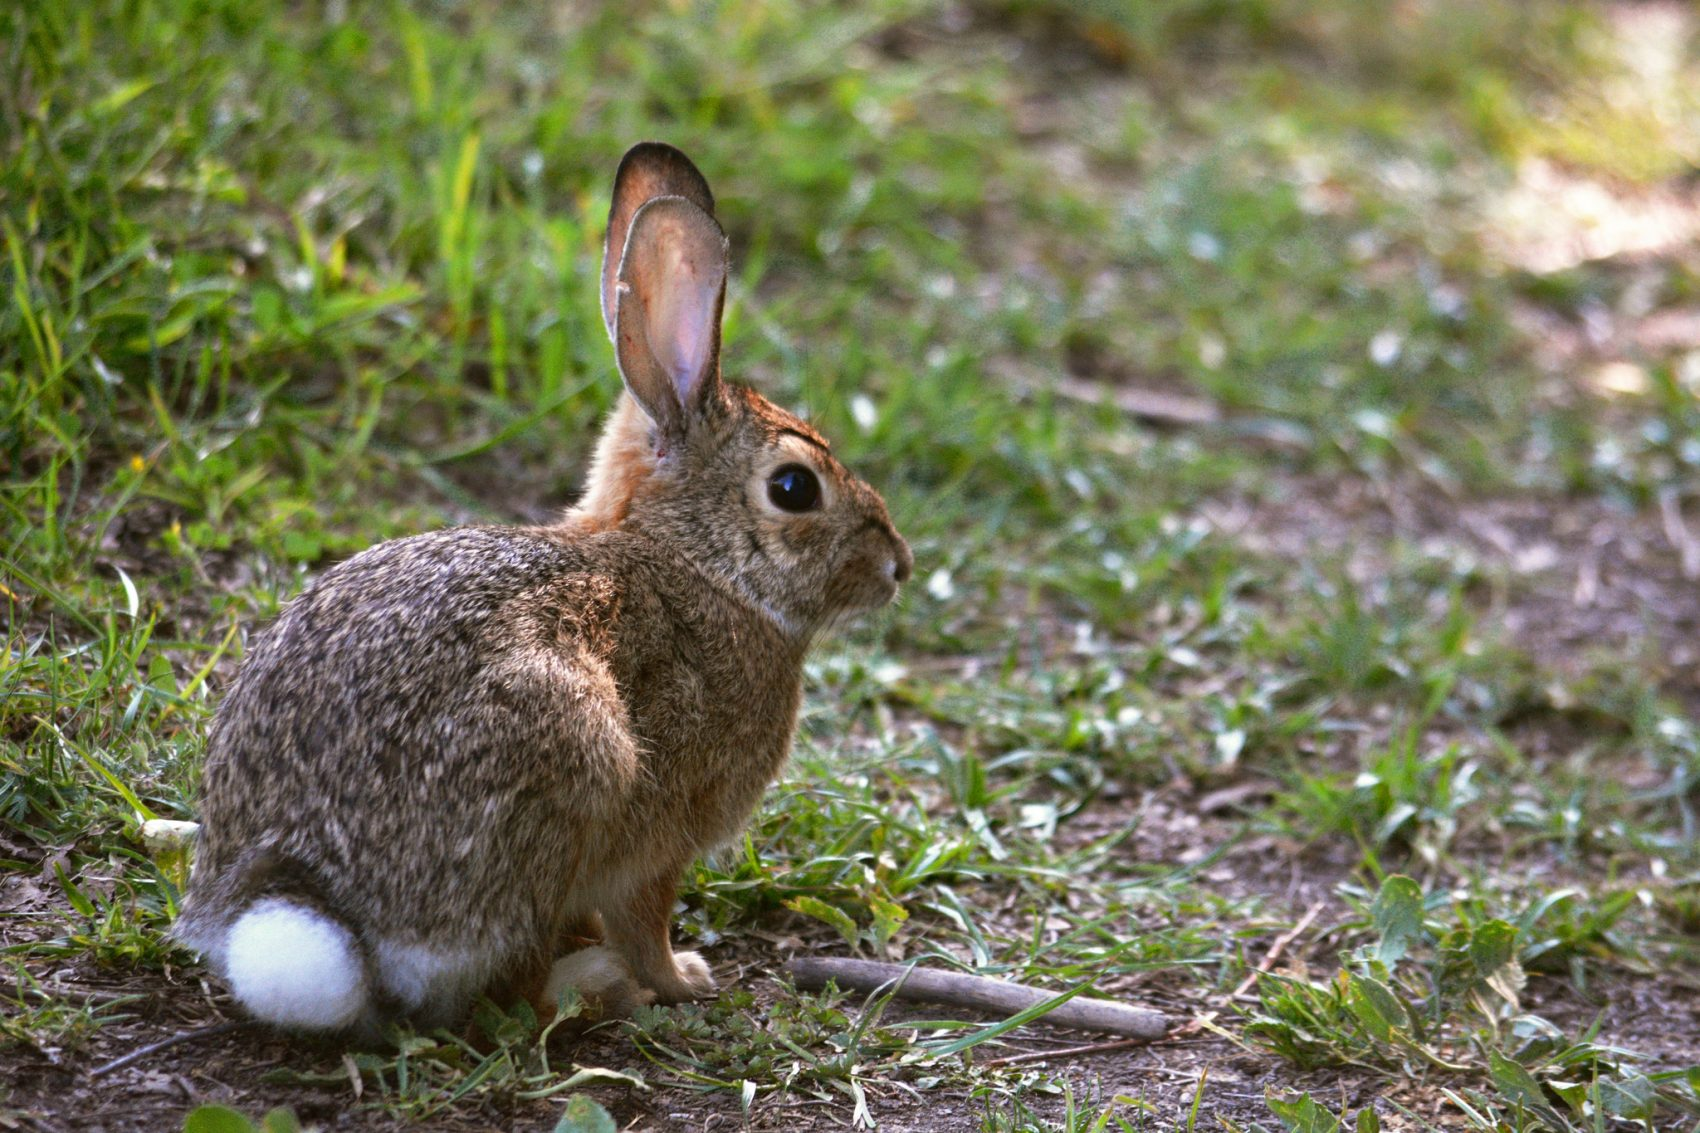 A cottontail rabbit sits in nature. (Eric Sonstroem/Flickr)